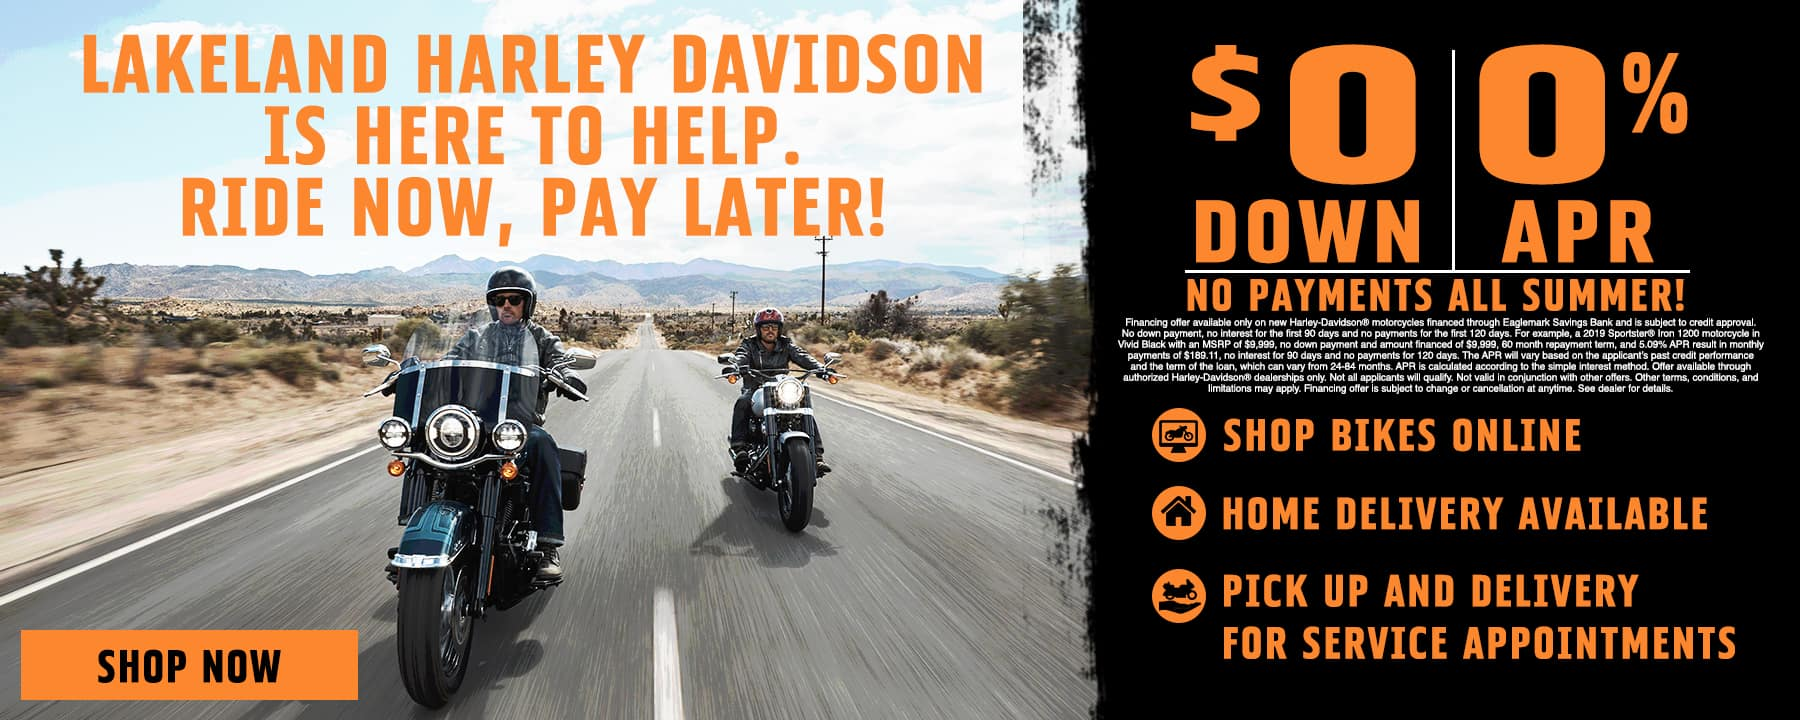 Lakeland Harley-Davidson is Here to Help! Ride Now, Pay Later!